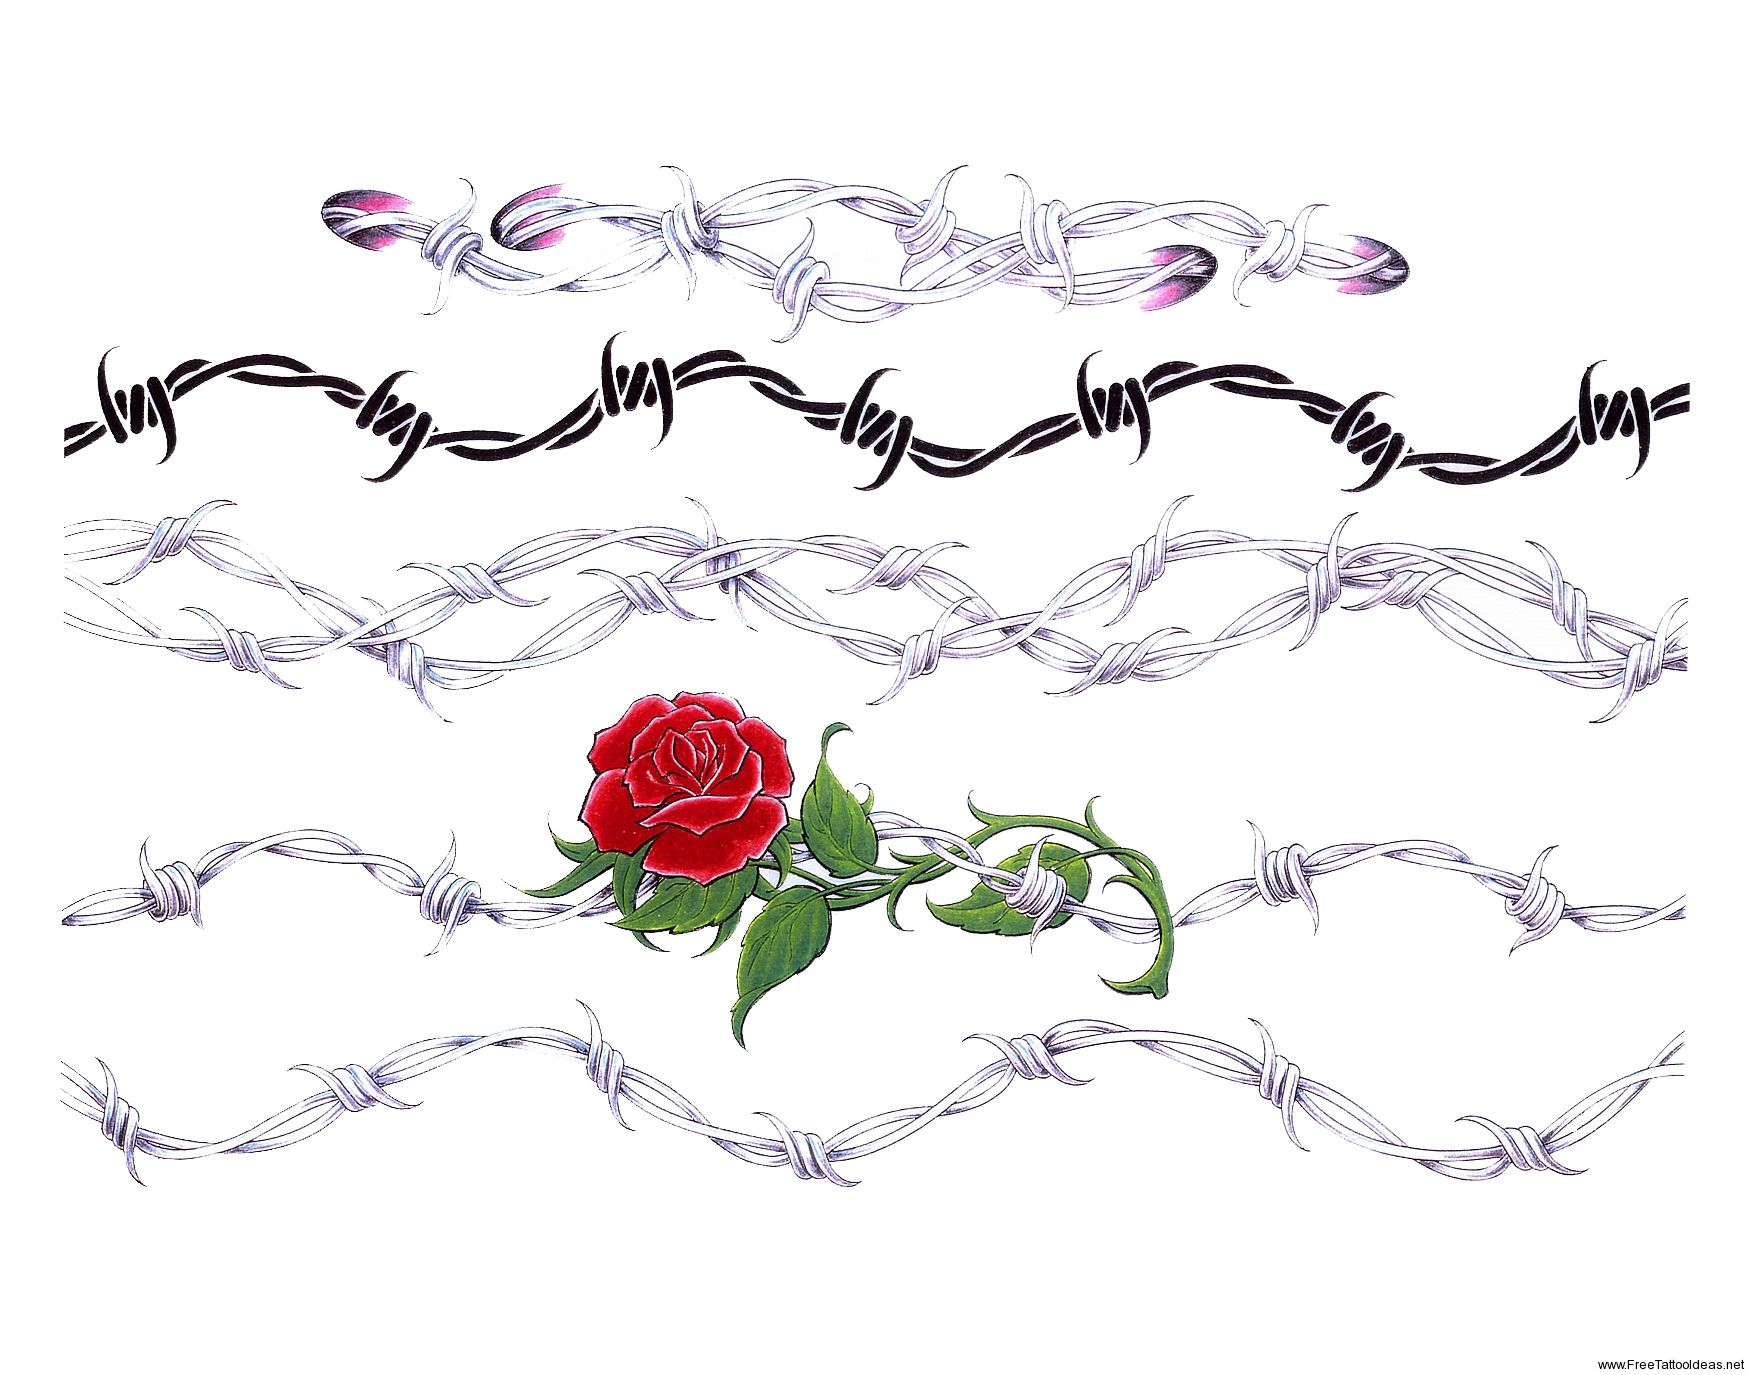 Roses And Barb Wire Graphics Center Mosfetcircuitsymbols Barbwire Armband Tattoos Top Rated Rh Pinterest Ca Barbed Blog